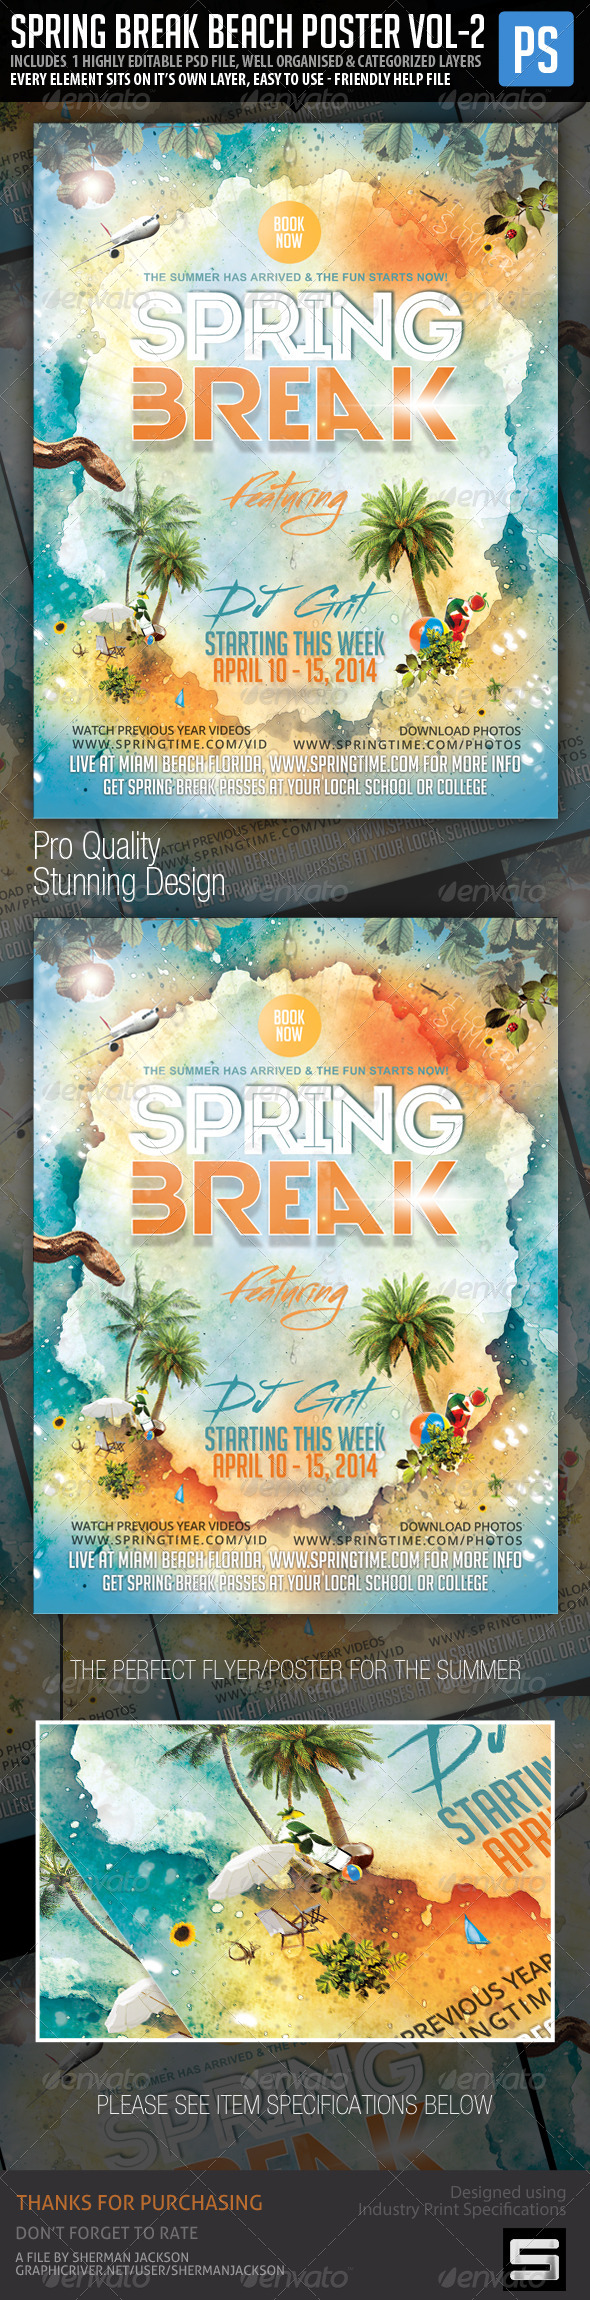 Spring Break Beach Party Vol.2 Poster/Flyer - Events Flyers